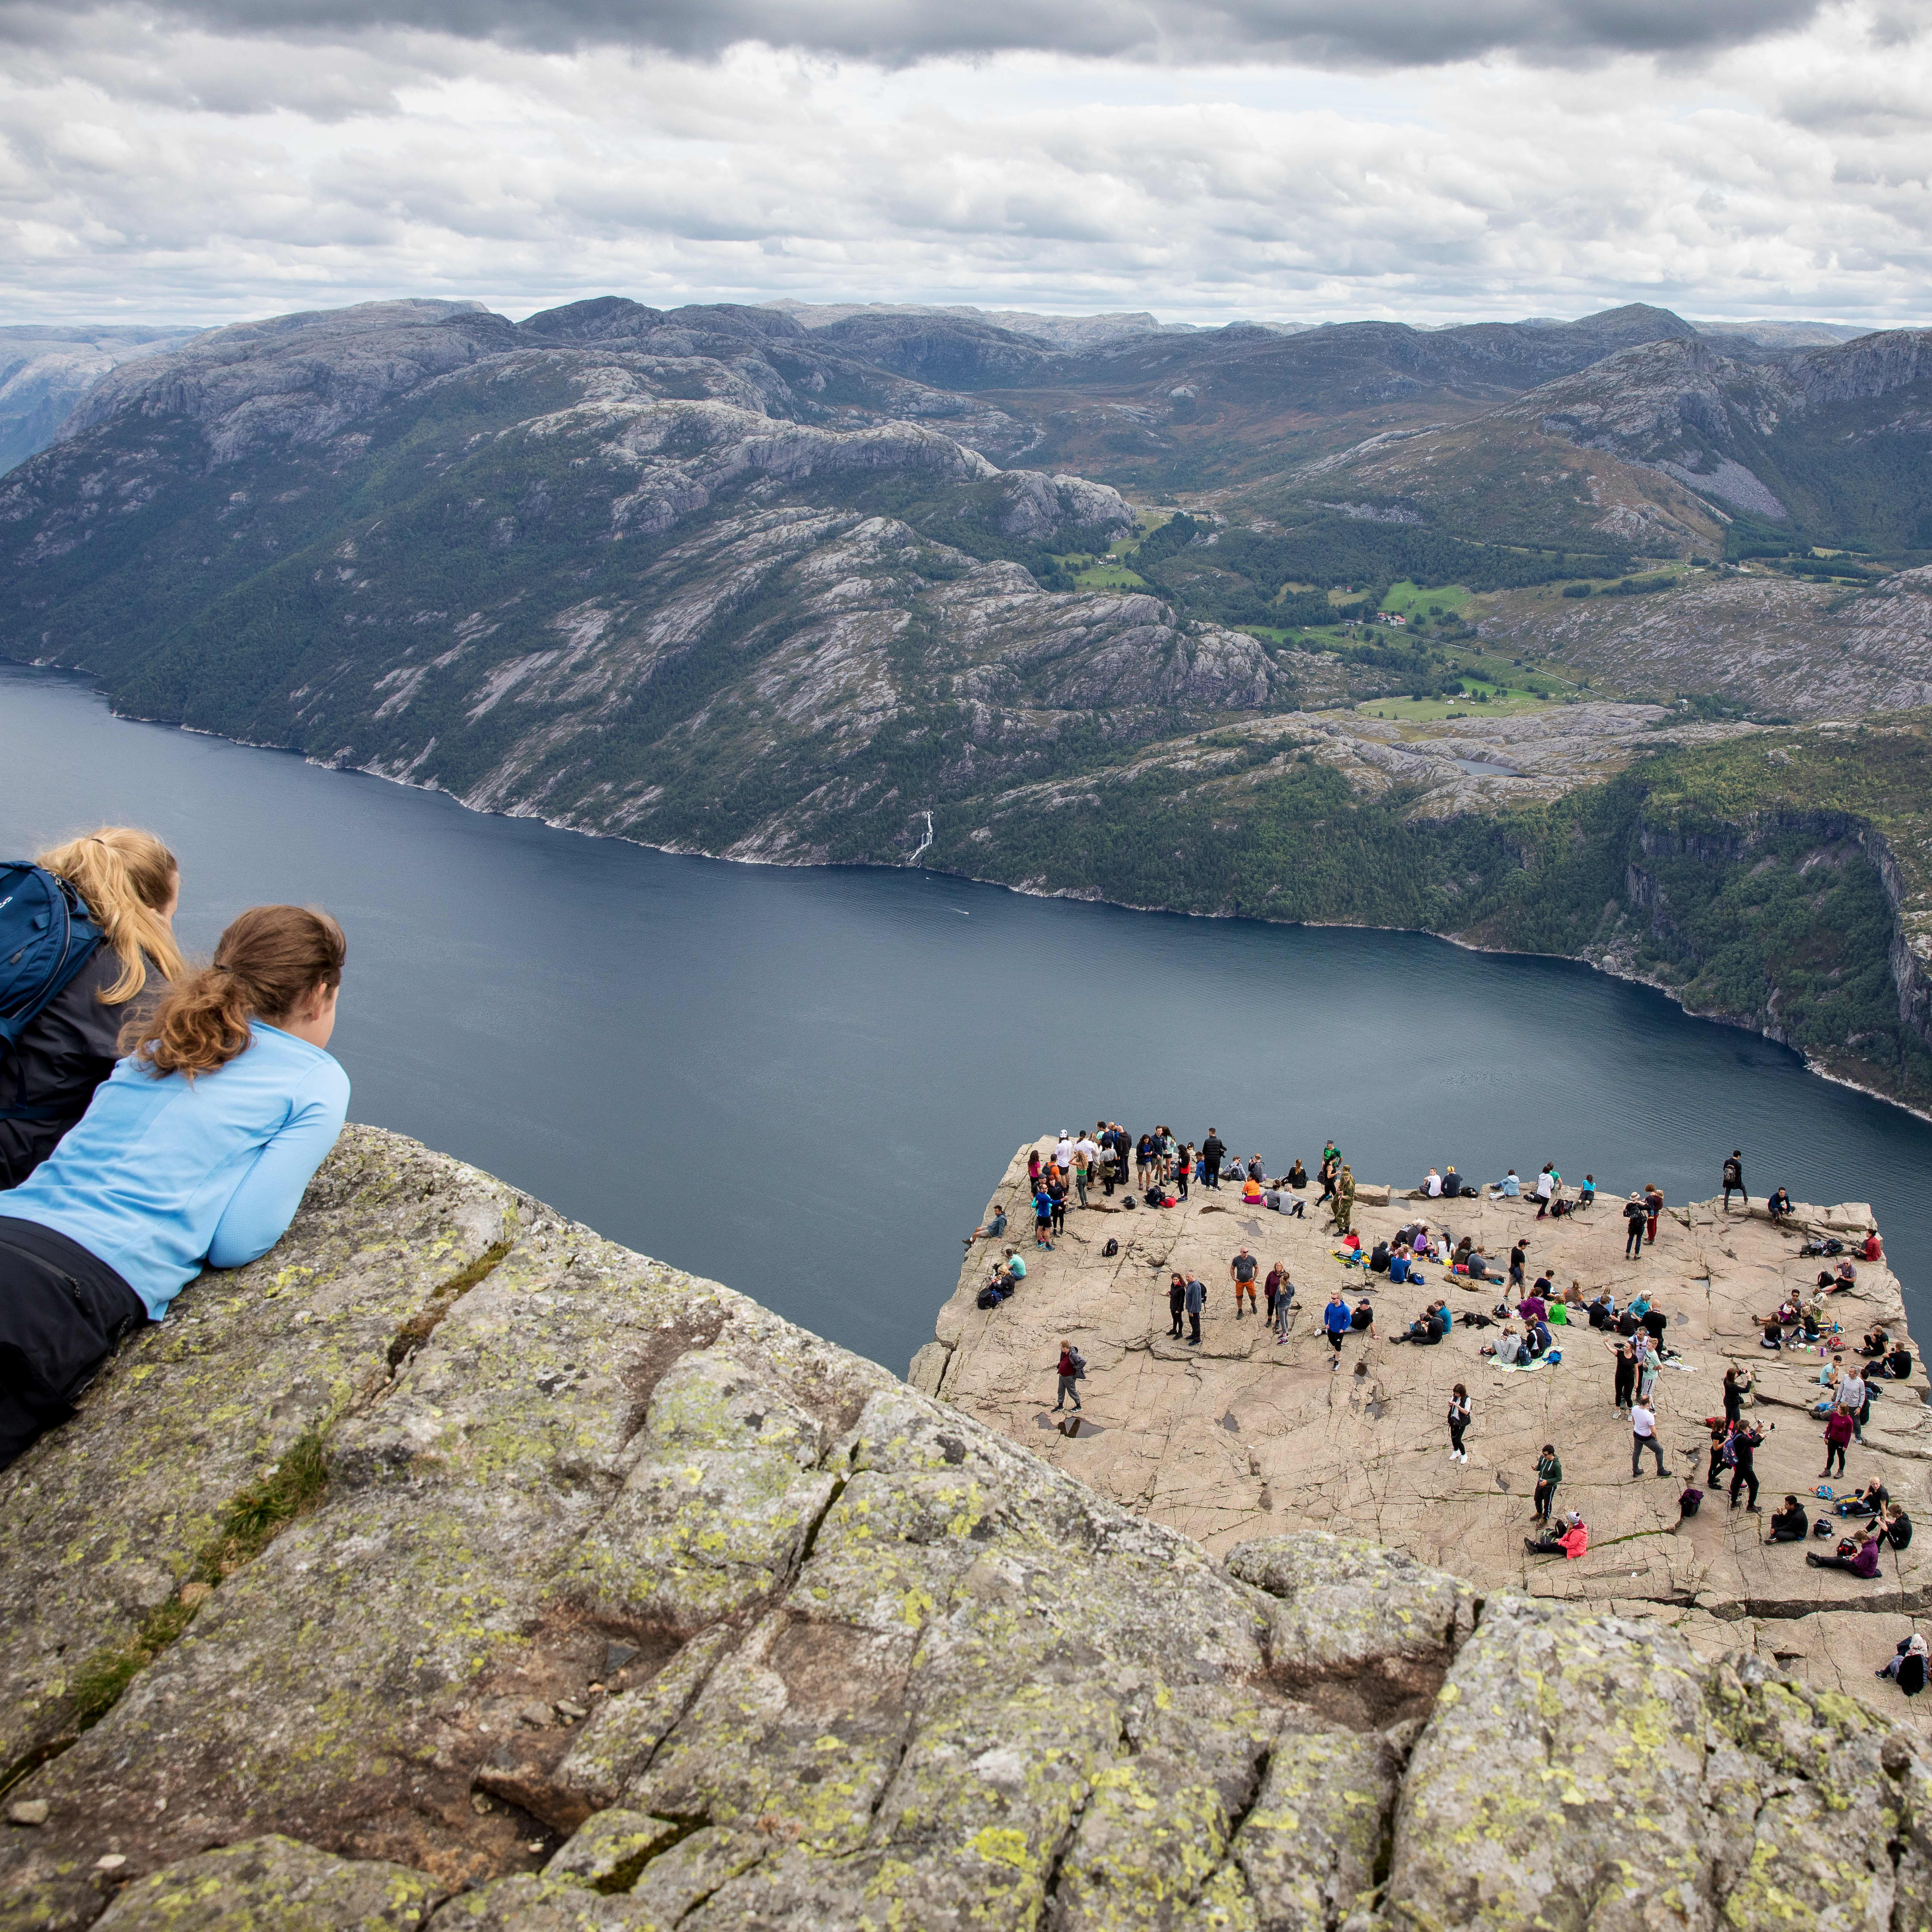 Two girls lying on a cliff above Preikestolen looking down at a large crowd of people that are walking on the rock itself. In the background you see Lysefjorden and the surrounding rock landscape.